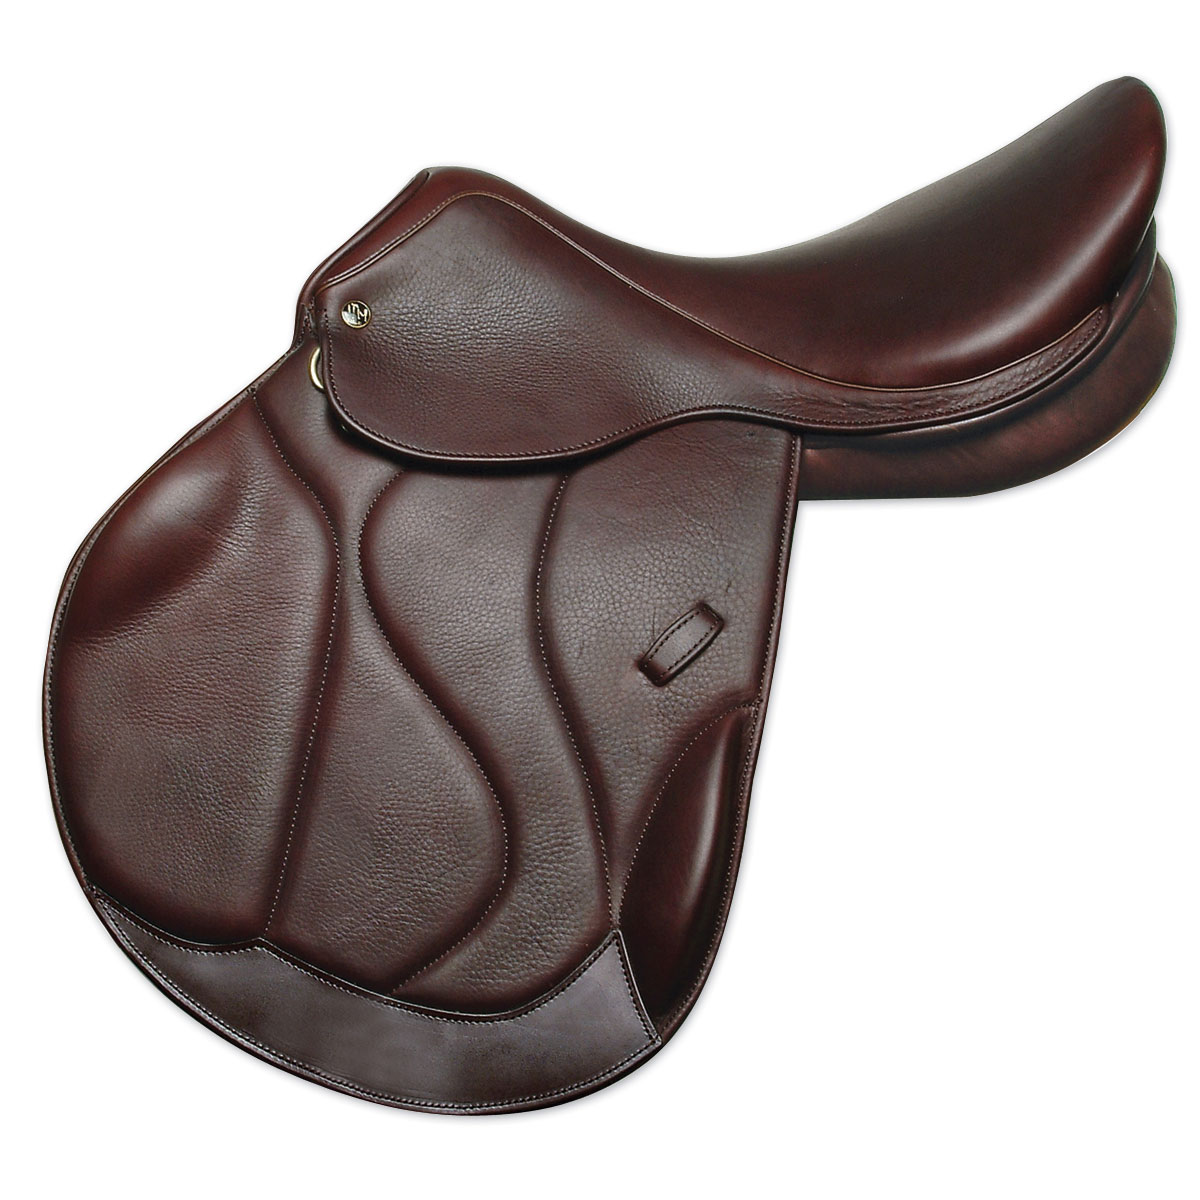 M. Toulouse Marielle Monoflap Eventing Saddle